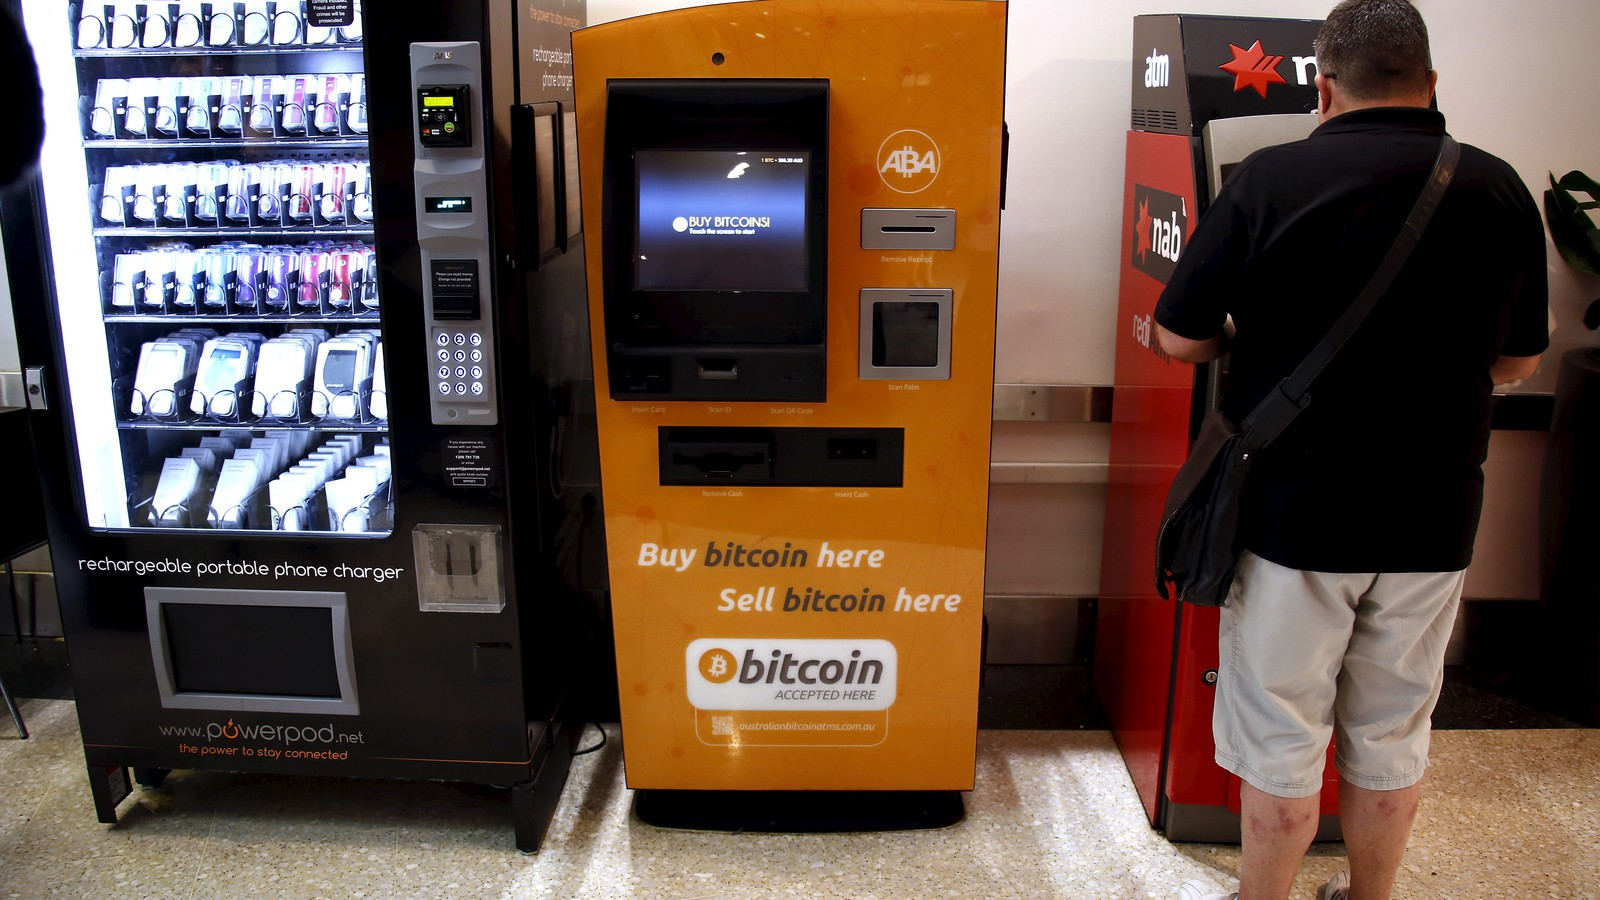 Know how easy it is to find a Bitcoin ATM near me